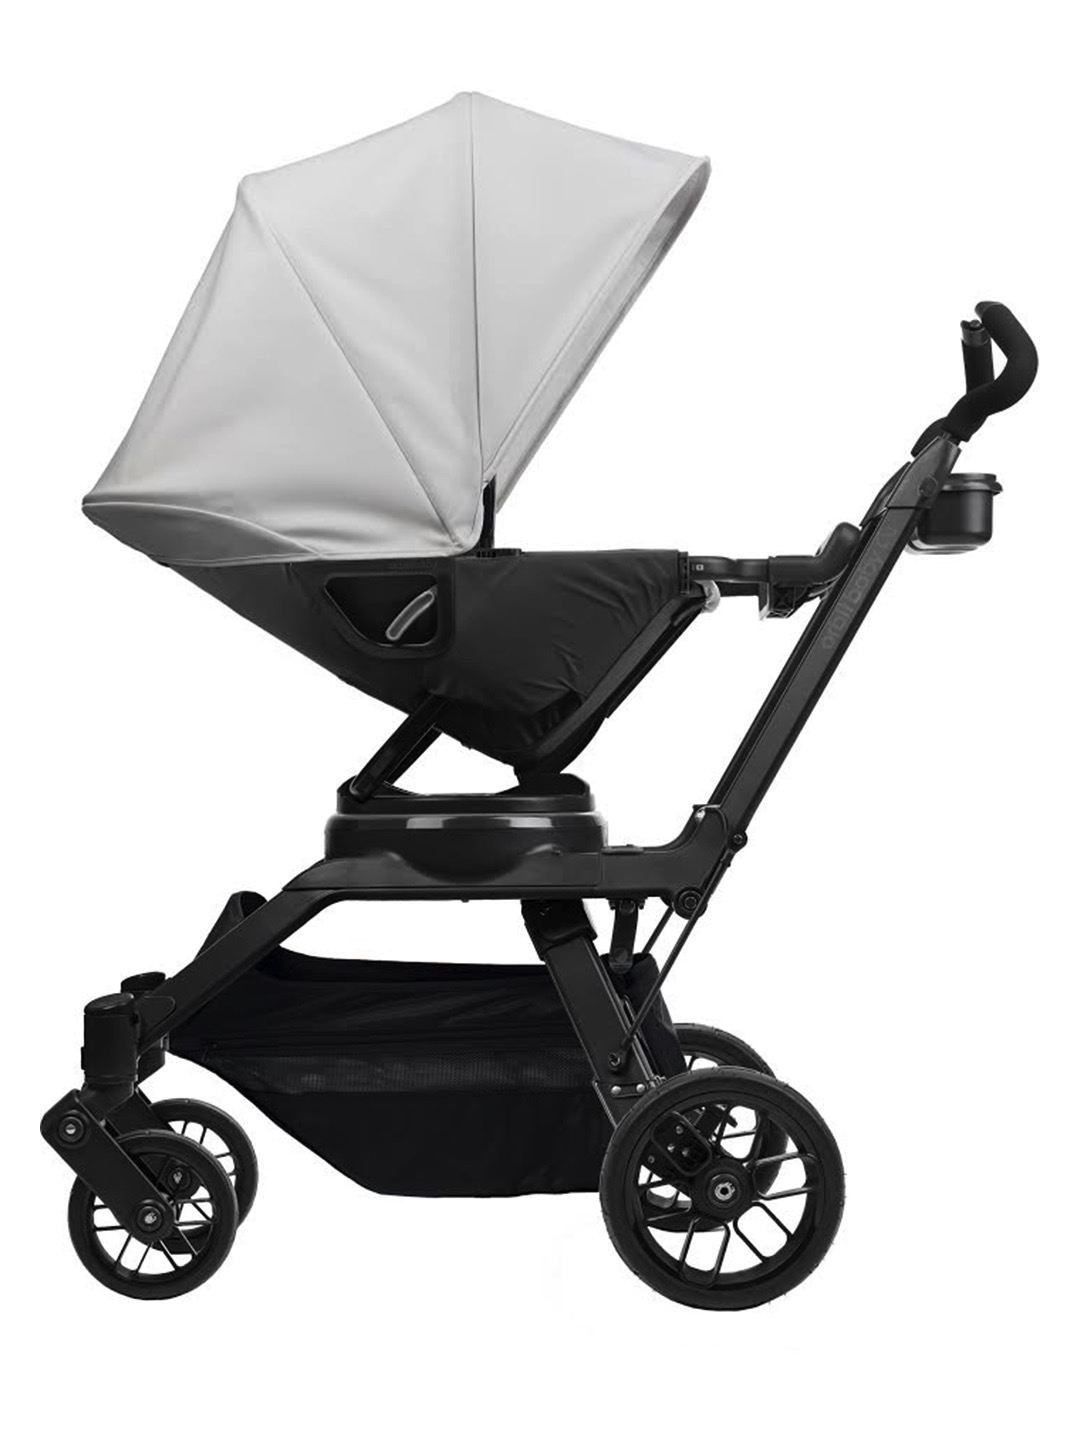 Stroller Comparison ~ 6 Double Inline Strollers : Growing Your Baby